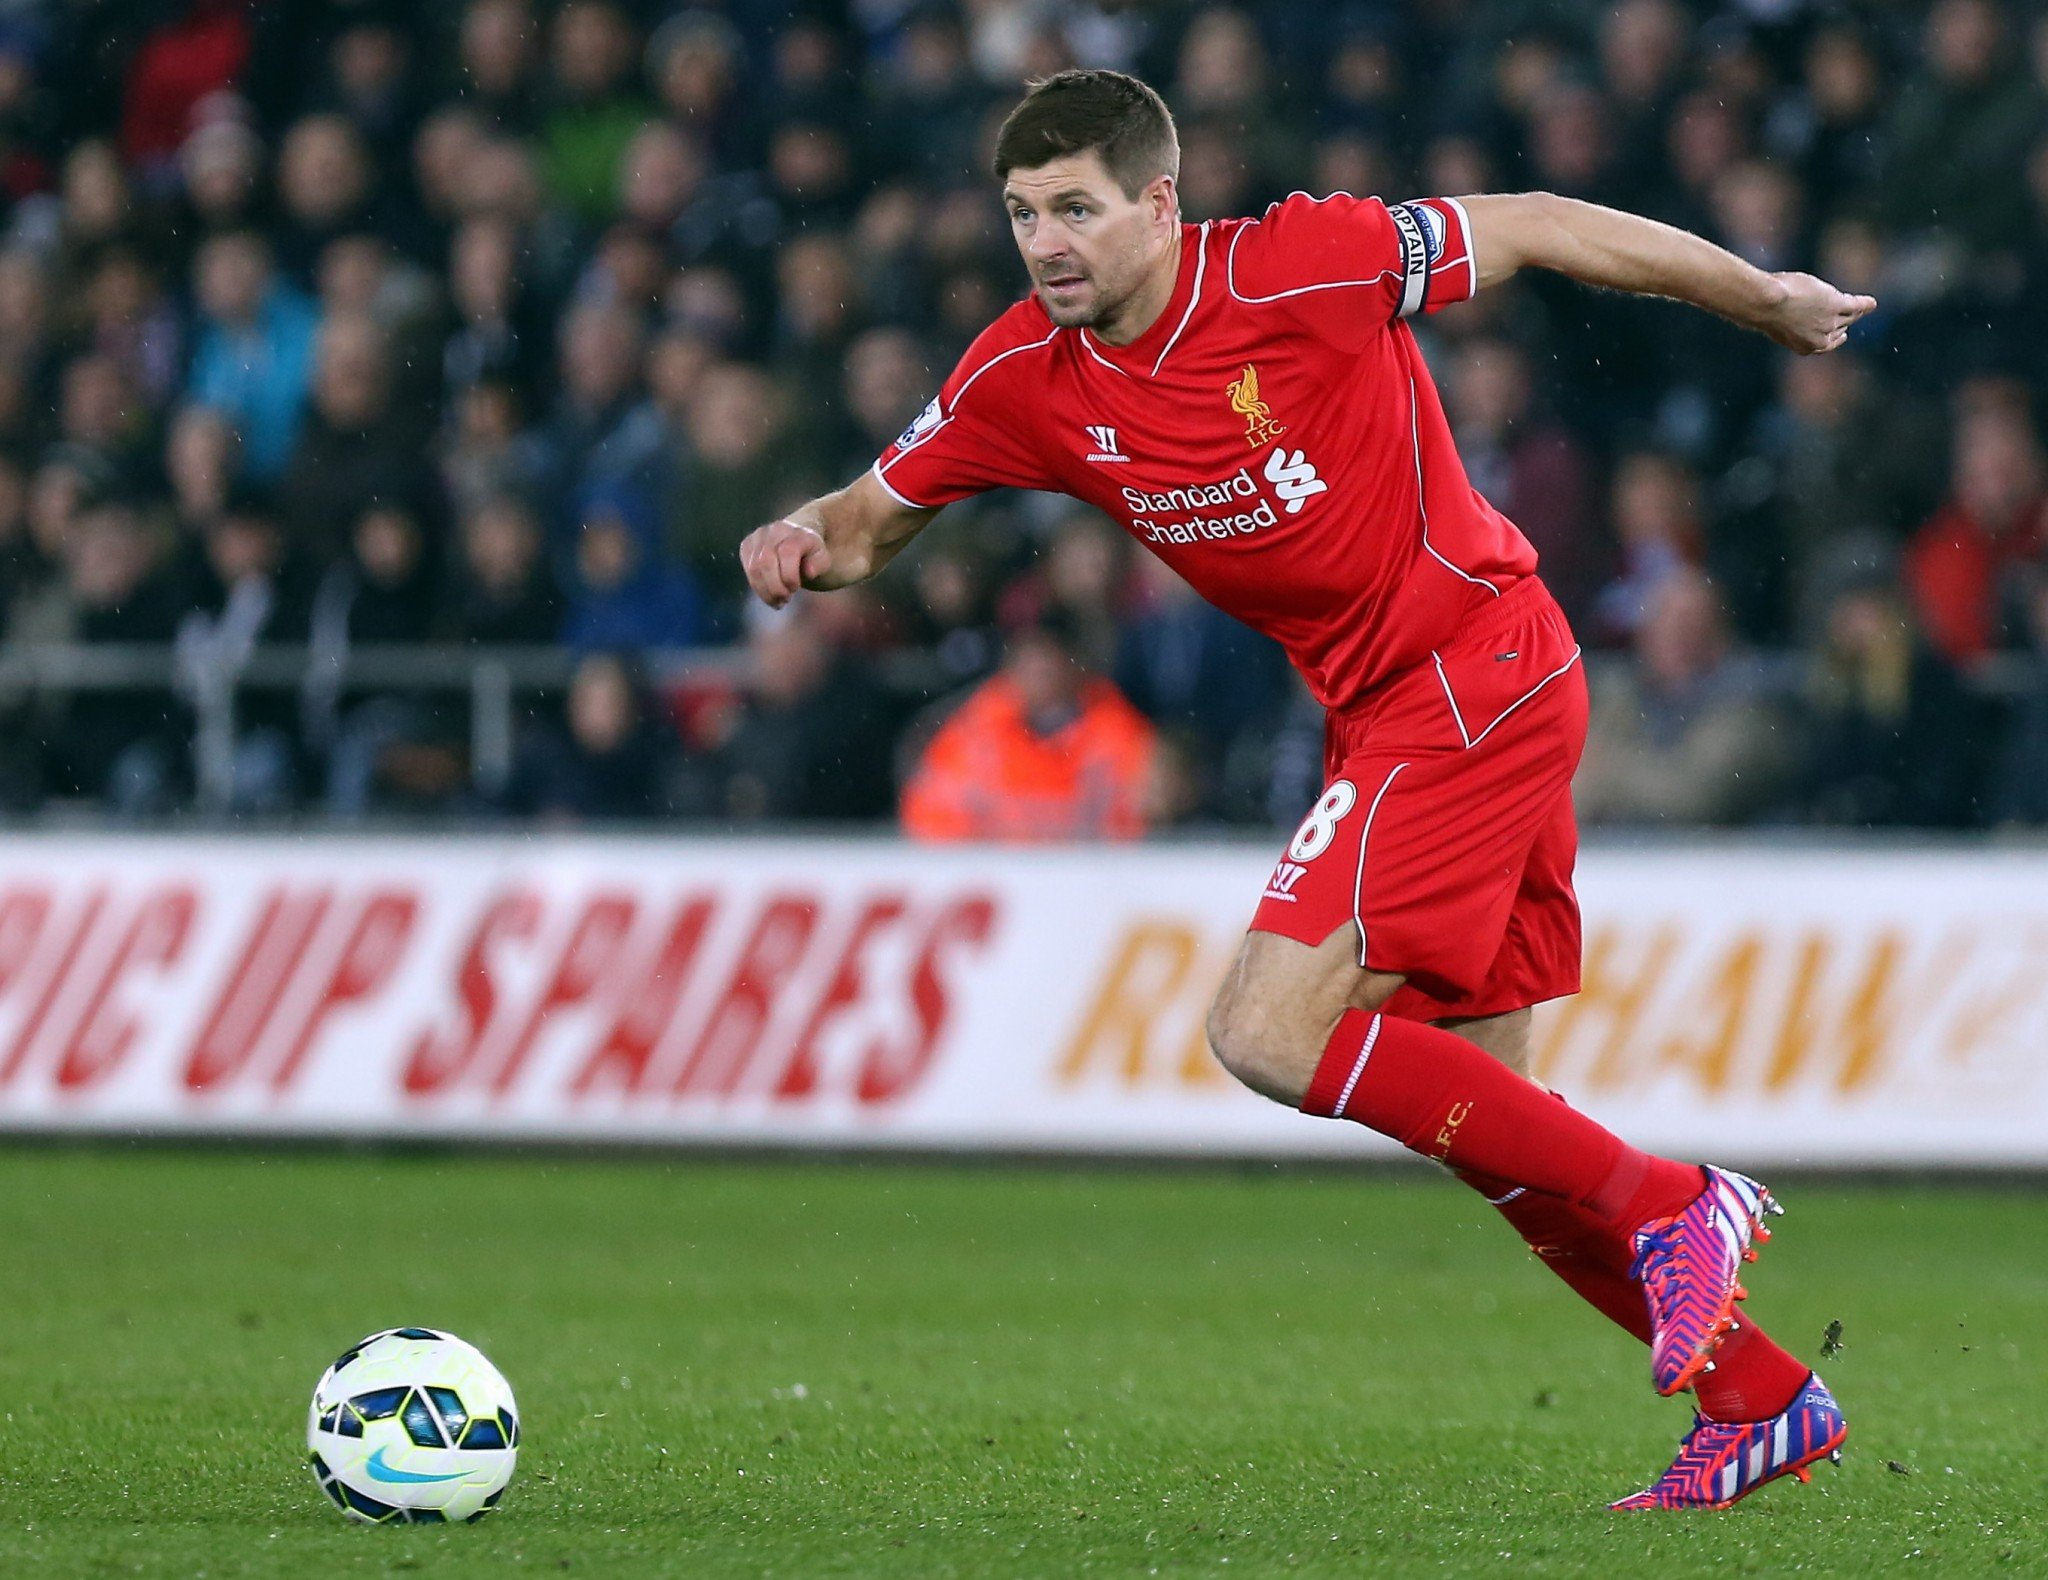 He's back - Steven Gerrard will play at Anfield next month